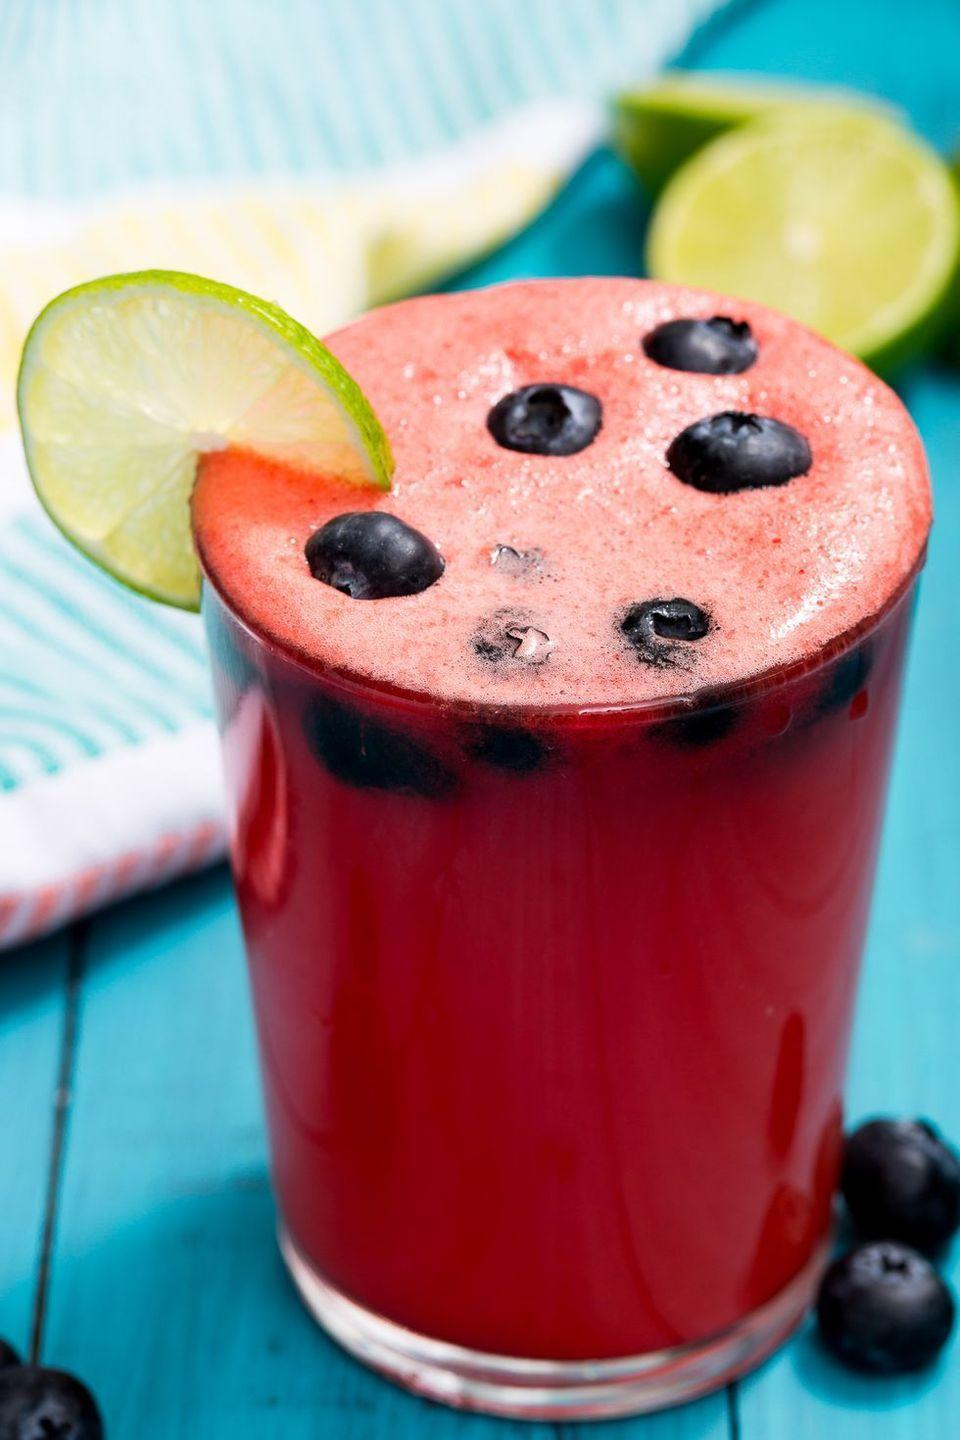 """<p>Refreshing watermelon and crisp blueberries make this the perfect 4th of July cocktail. </p><p><strong><em>Get the recipe at <a href=""""https://www.delish.com/cooking/recipe-ideas/recipes/a47213/watermelon-sangria-recipe/"""" rel=""""nofollow noopener"""" target=""""_blank"""" data-ylk=""""slk:Delish"""" class=""""link rapid-noclick-resp"""">Delish</a>. </em></strong></p>"""